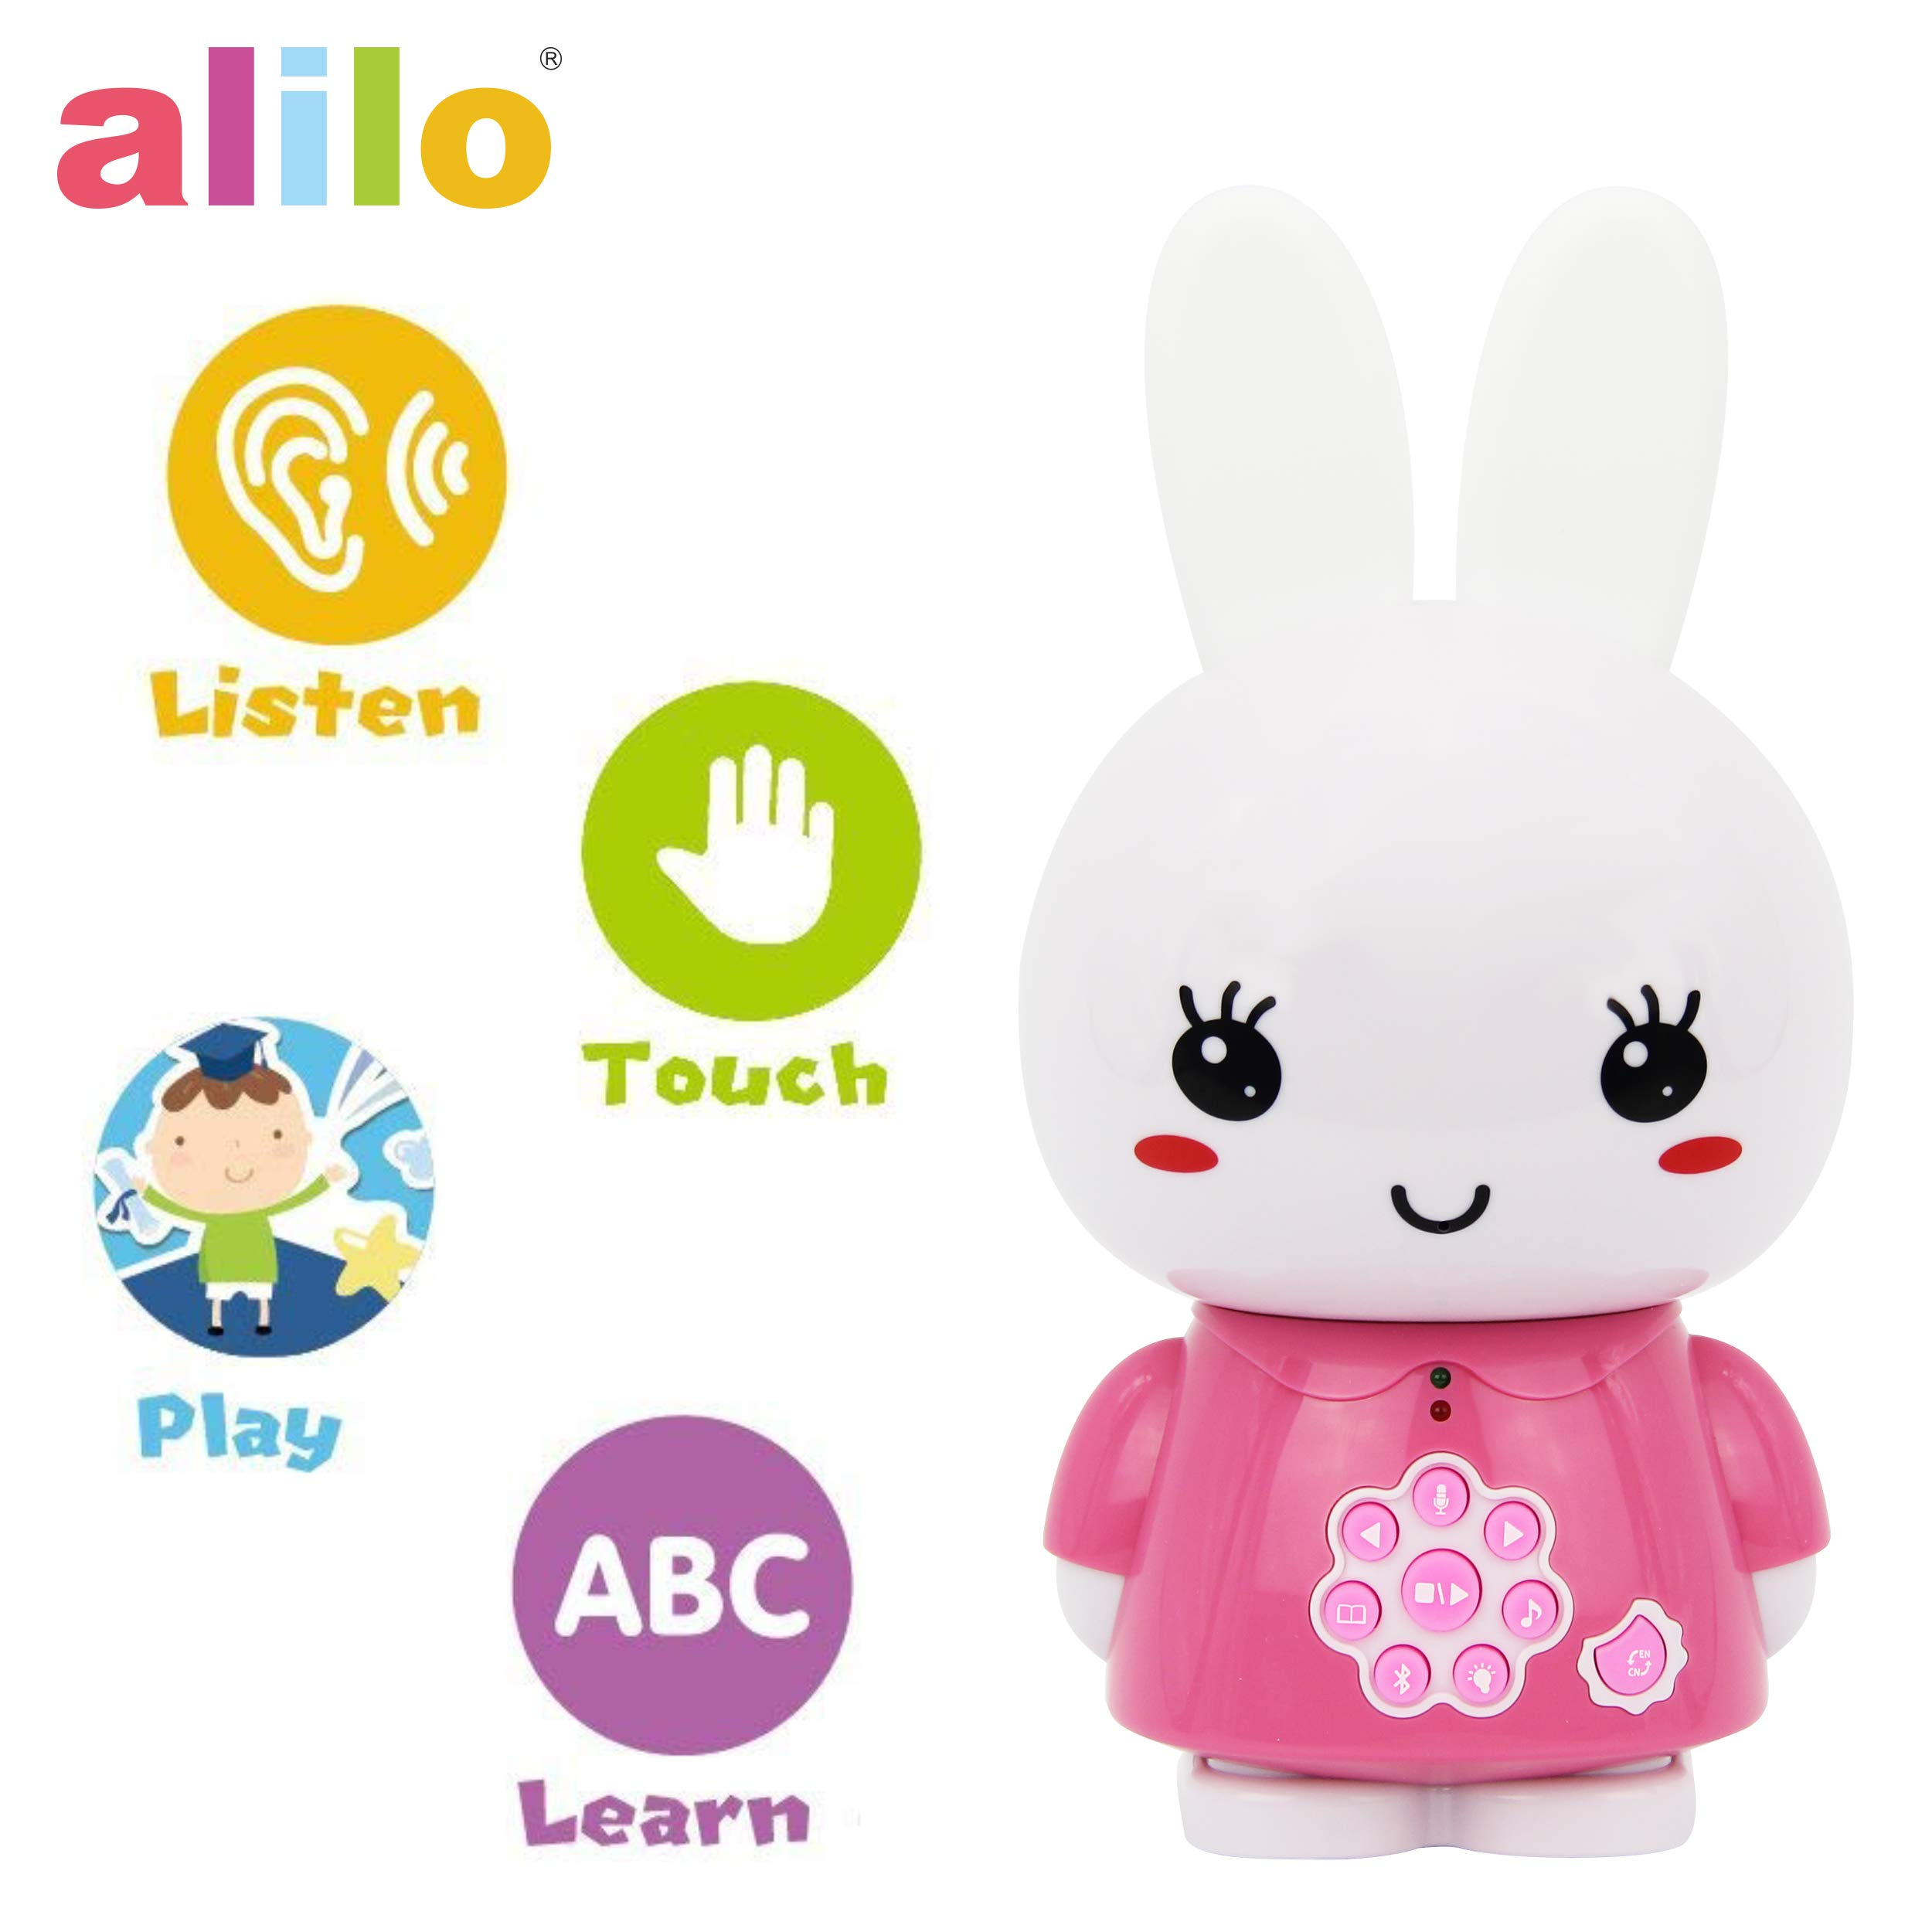 alilo Honey Bunny Story Teller Nursery Rhyme Lullaby Song Bedtime Story Fairy-Tale Interactive Children Brain Kids Early Development Learning Toy Training Bluetooth English Chinese Bilingual G6X Pink by alilo